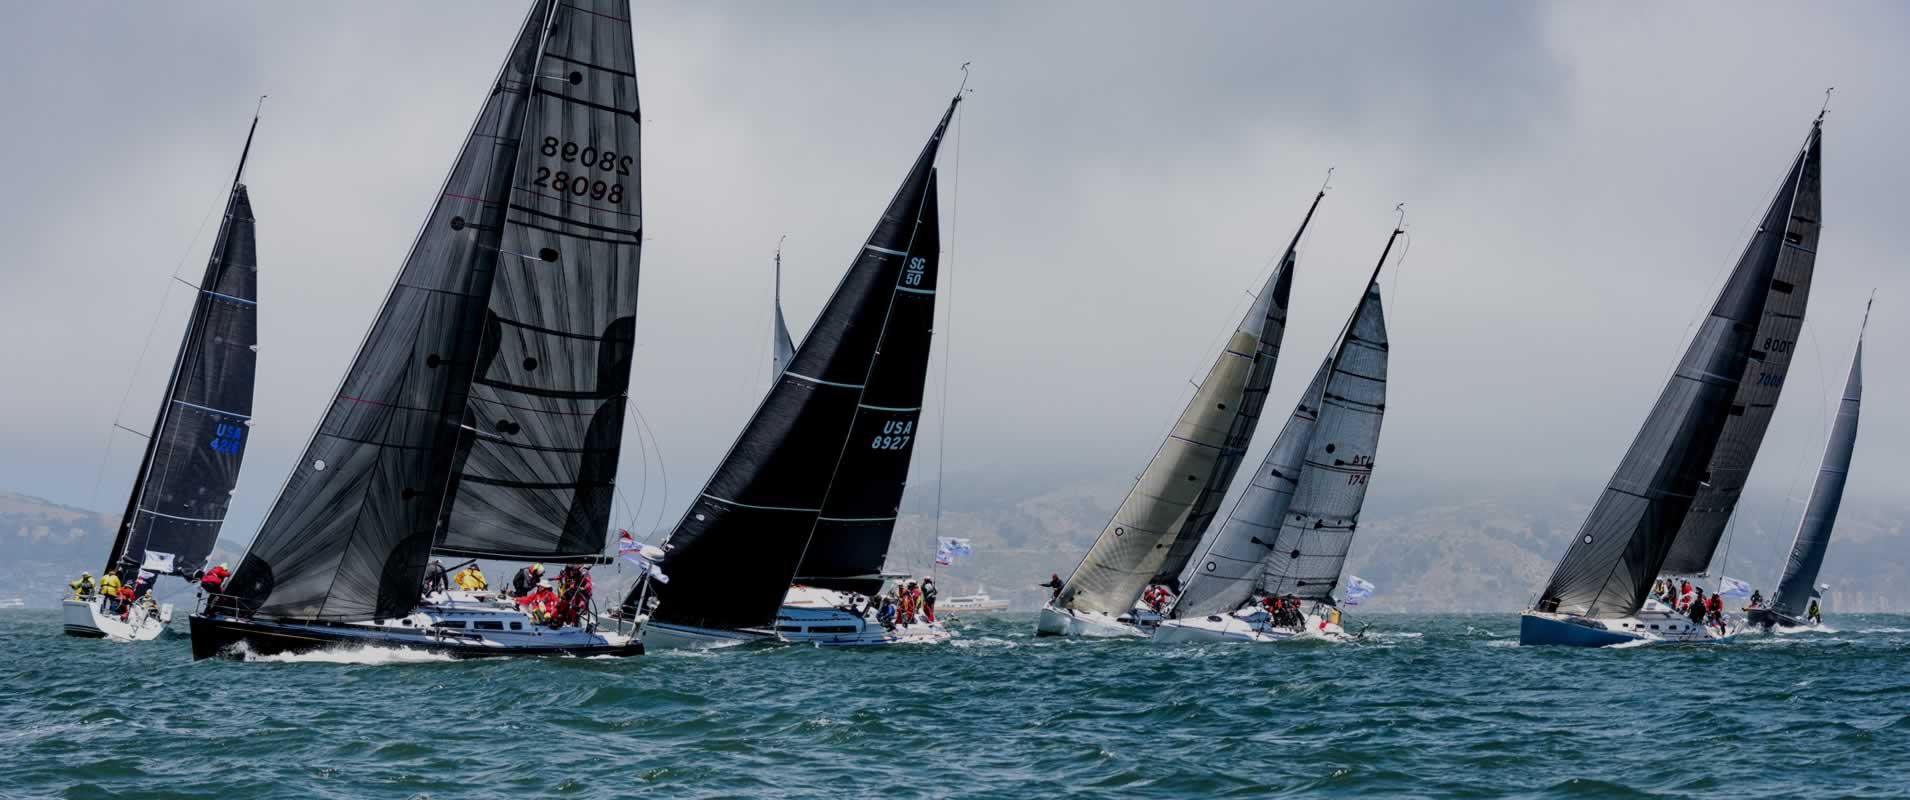 About the Pacific Cup Race